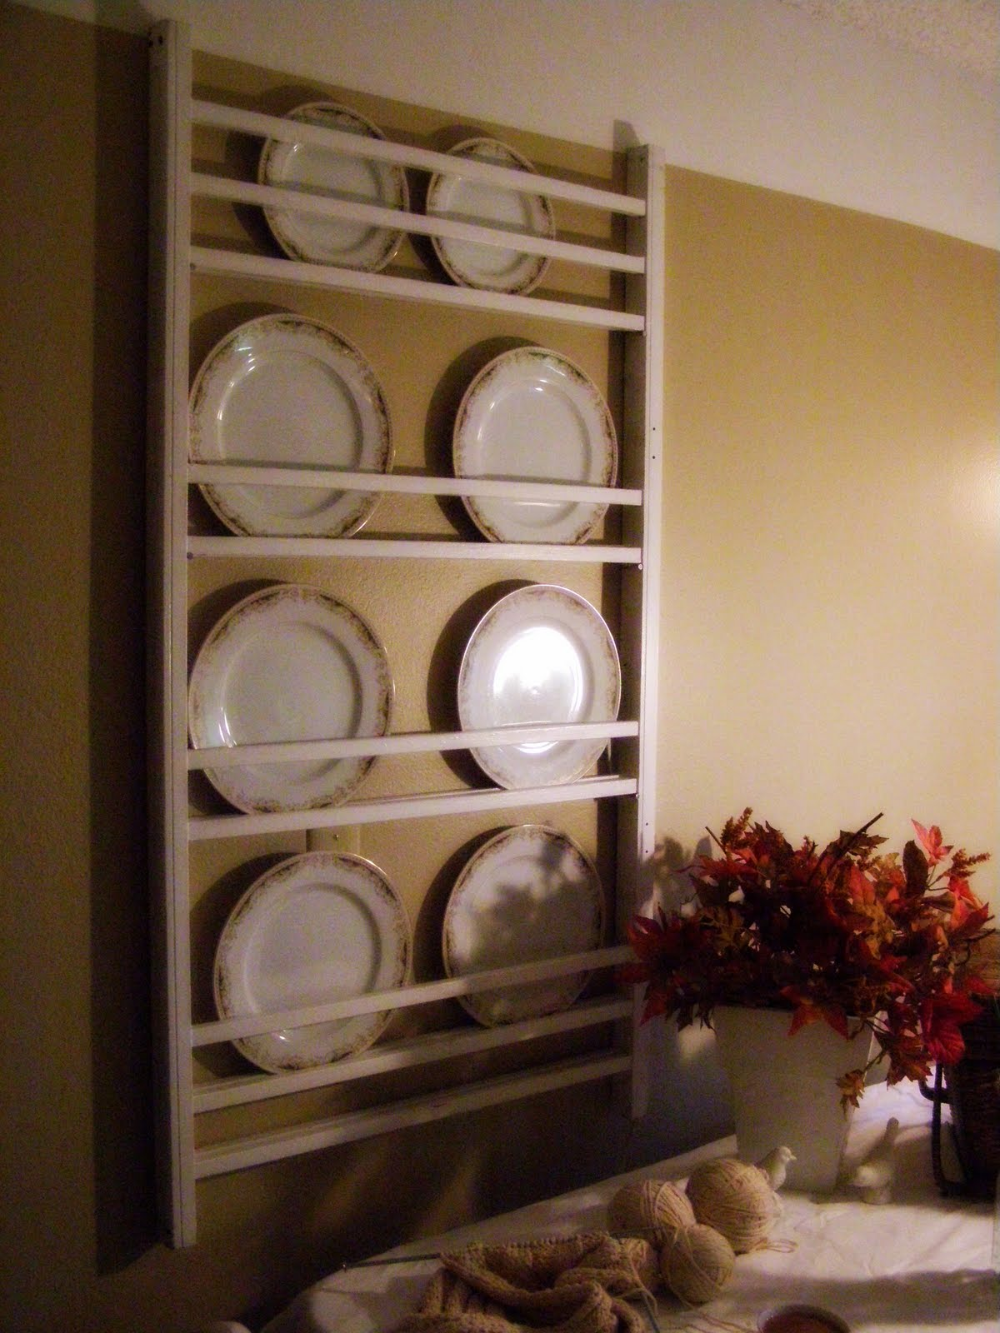 From Crib to Plate Rack; Up-cycle project #plateracks From Crib to Plate Rack; Up-cycle project #plateracks